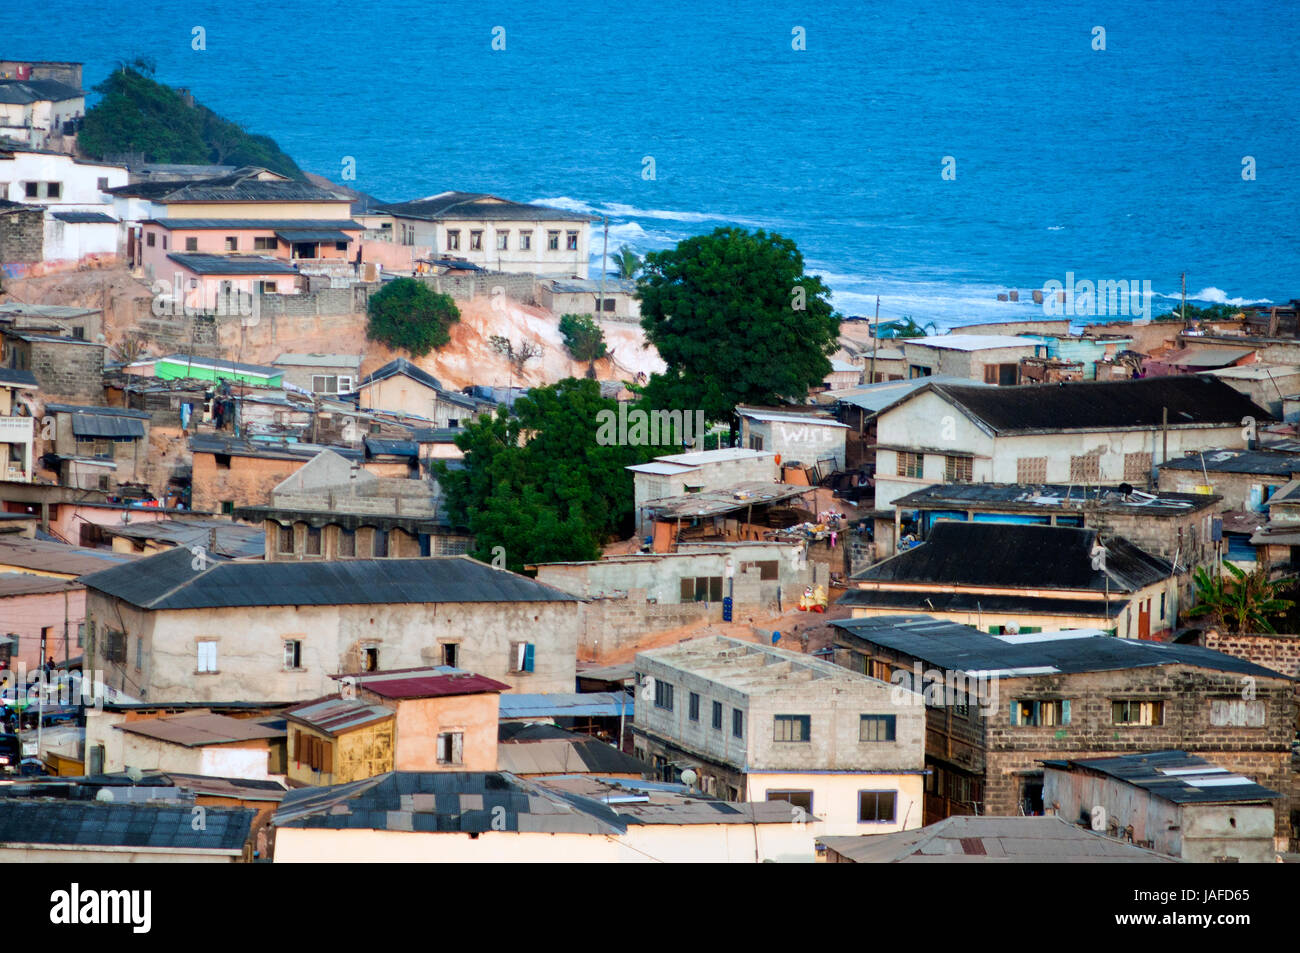 View of streets and housing from fort william cape coast ghana